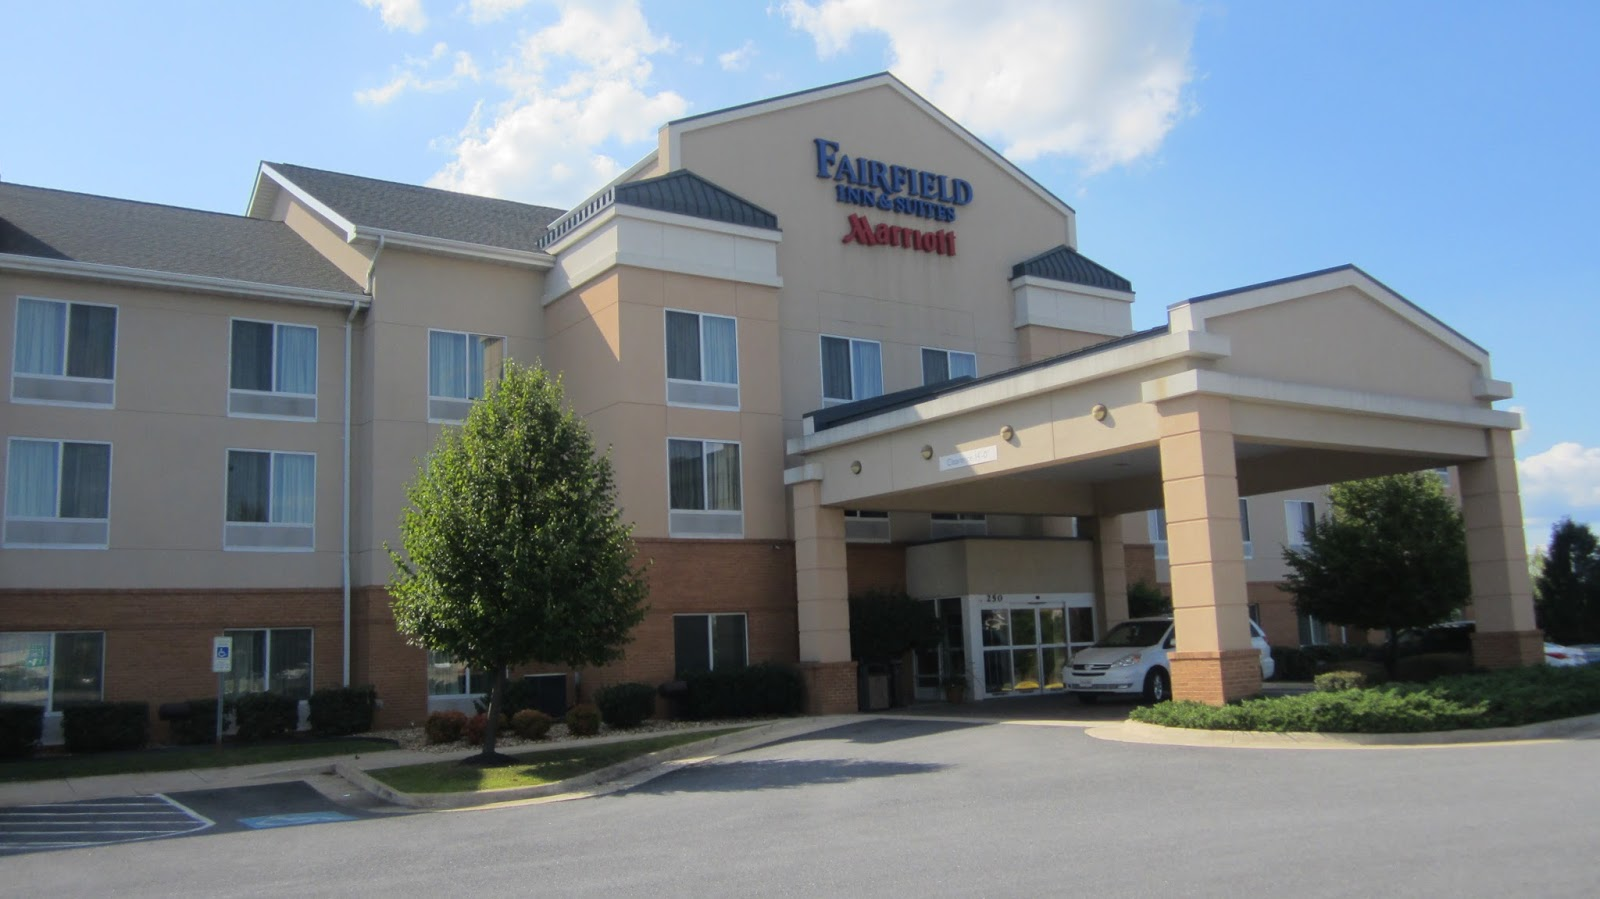 Hotel Review: Fairfield Inn and Suites – Winchester, VA